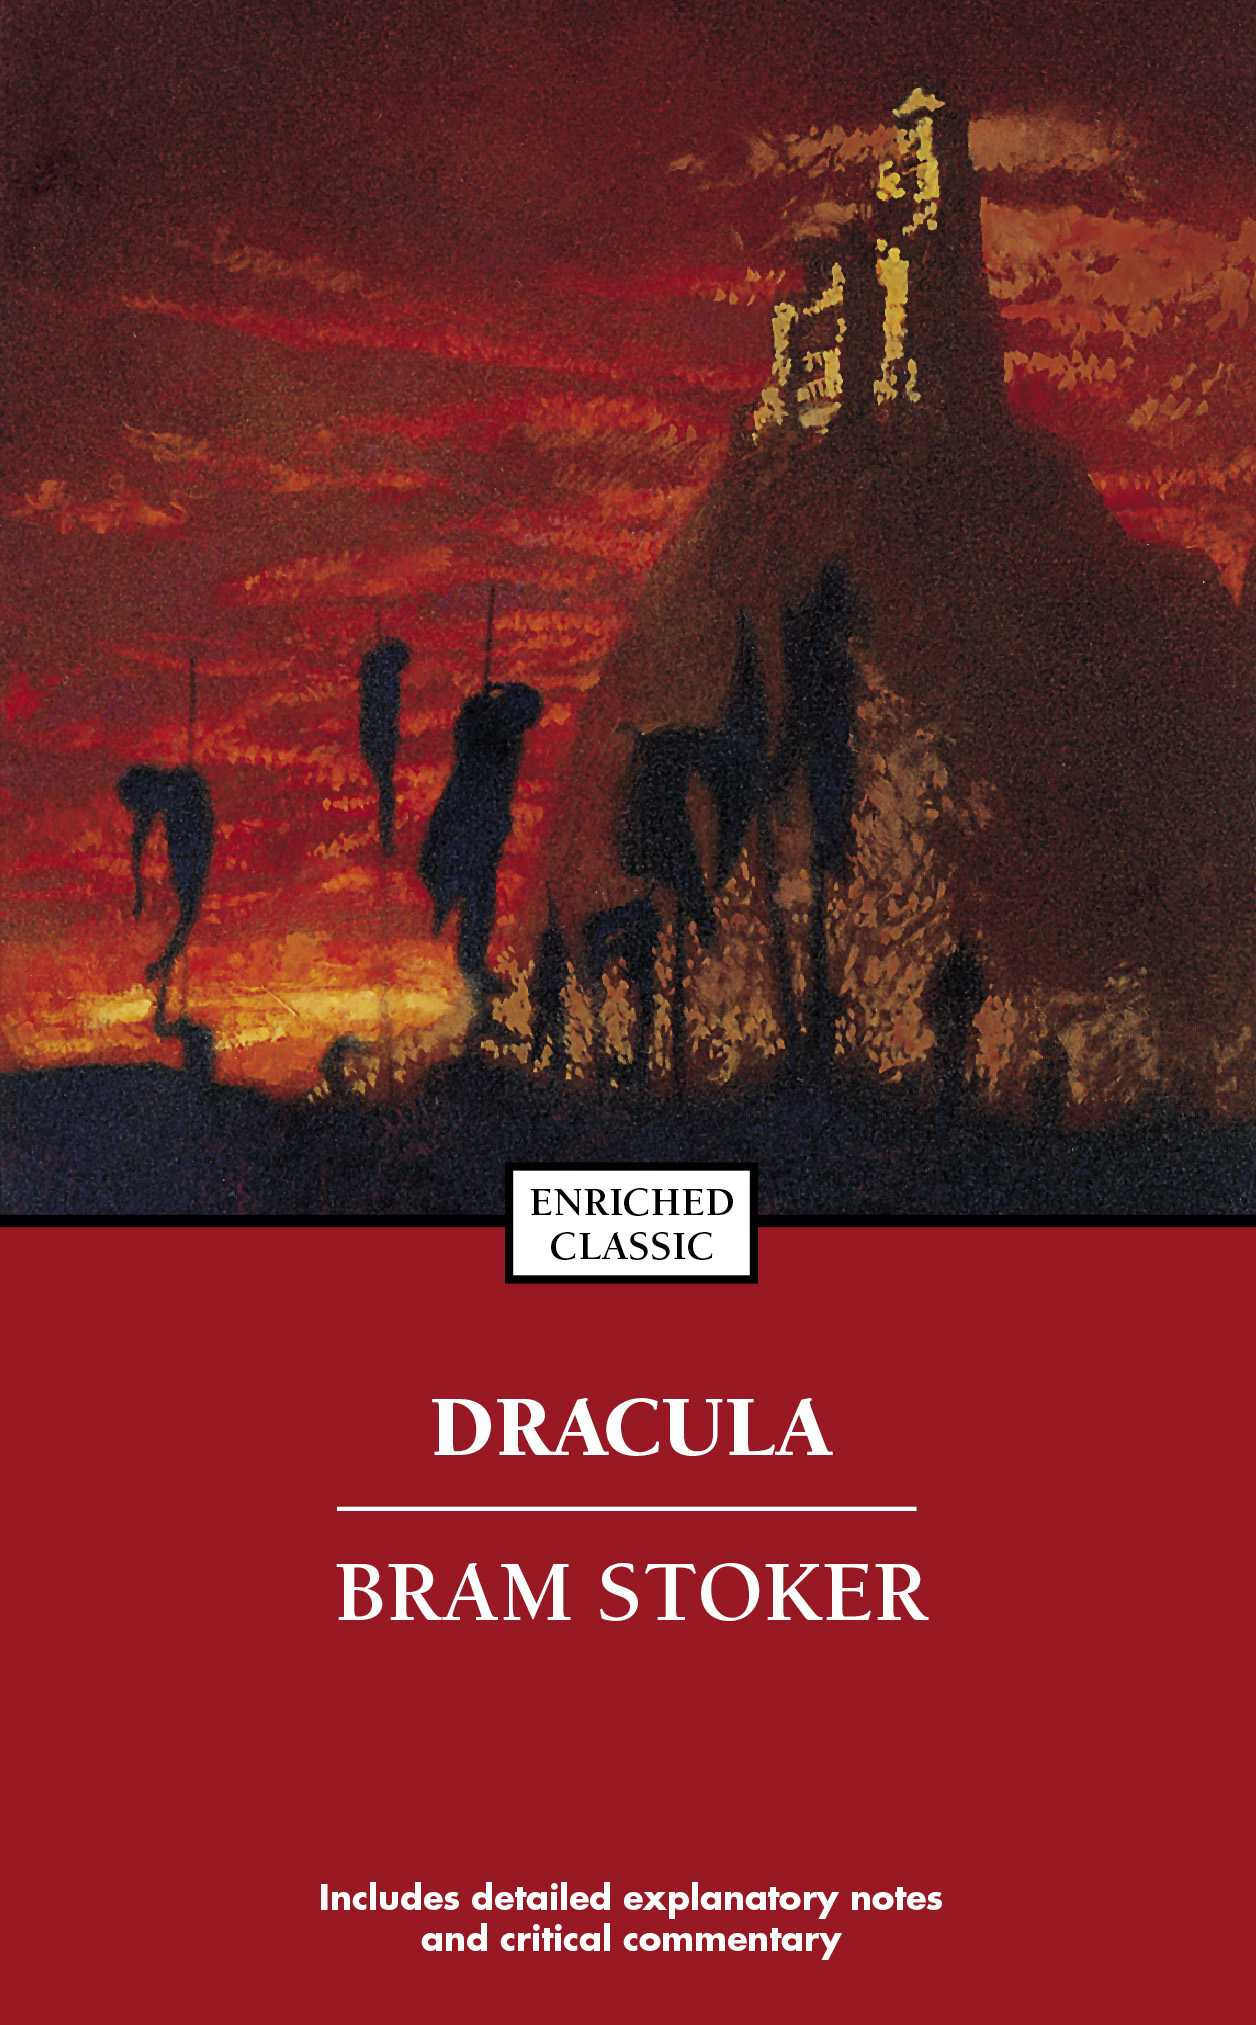 the genre of stokers dracula essay Bram stoker's dracula: genre typology (interpretation guide, literary criticism for college students and essay readers) - kindle edition by jasper bernstein download it once and read it on your kindle device, pc, phones or tablets use features like bookmarks, note taking and highlighting while reading bram stoker's dracula: genre typology (interpretation guide, literary criticism for.